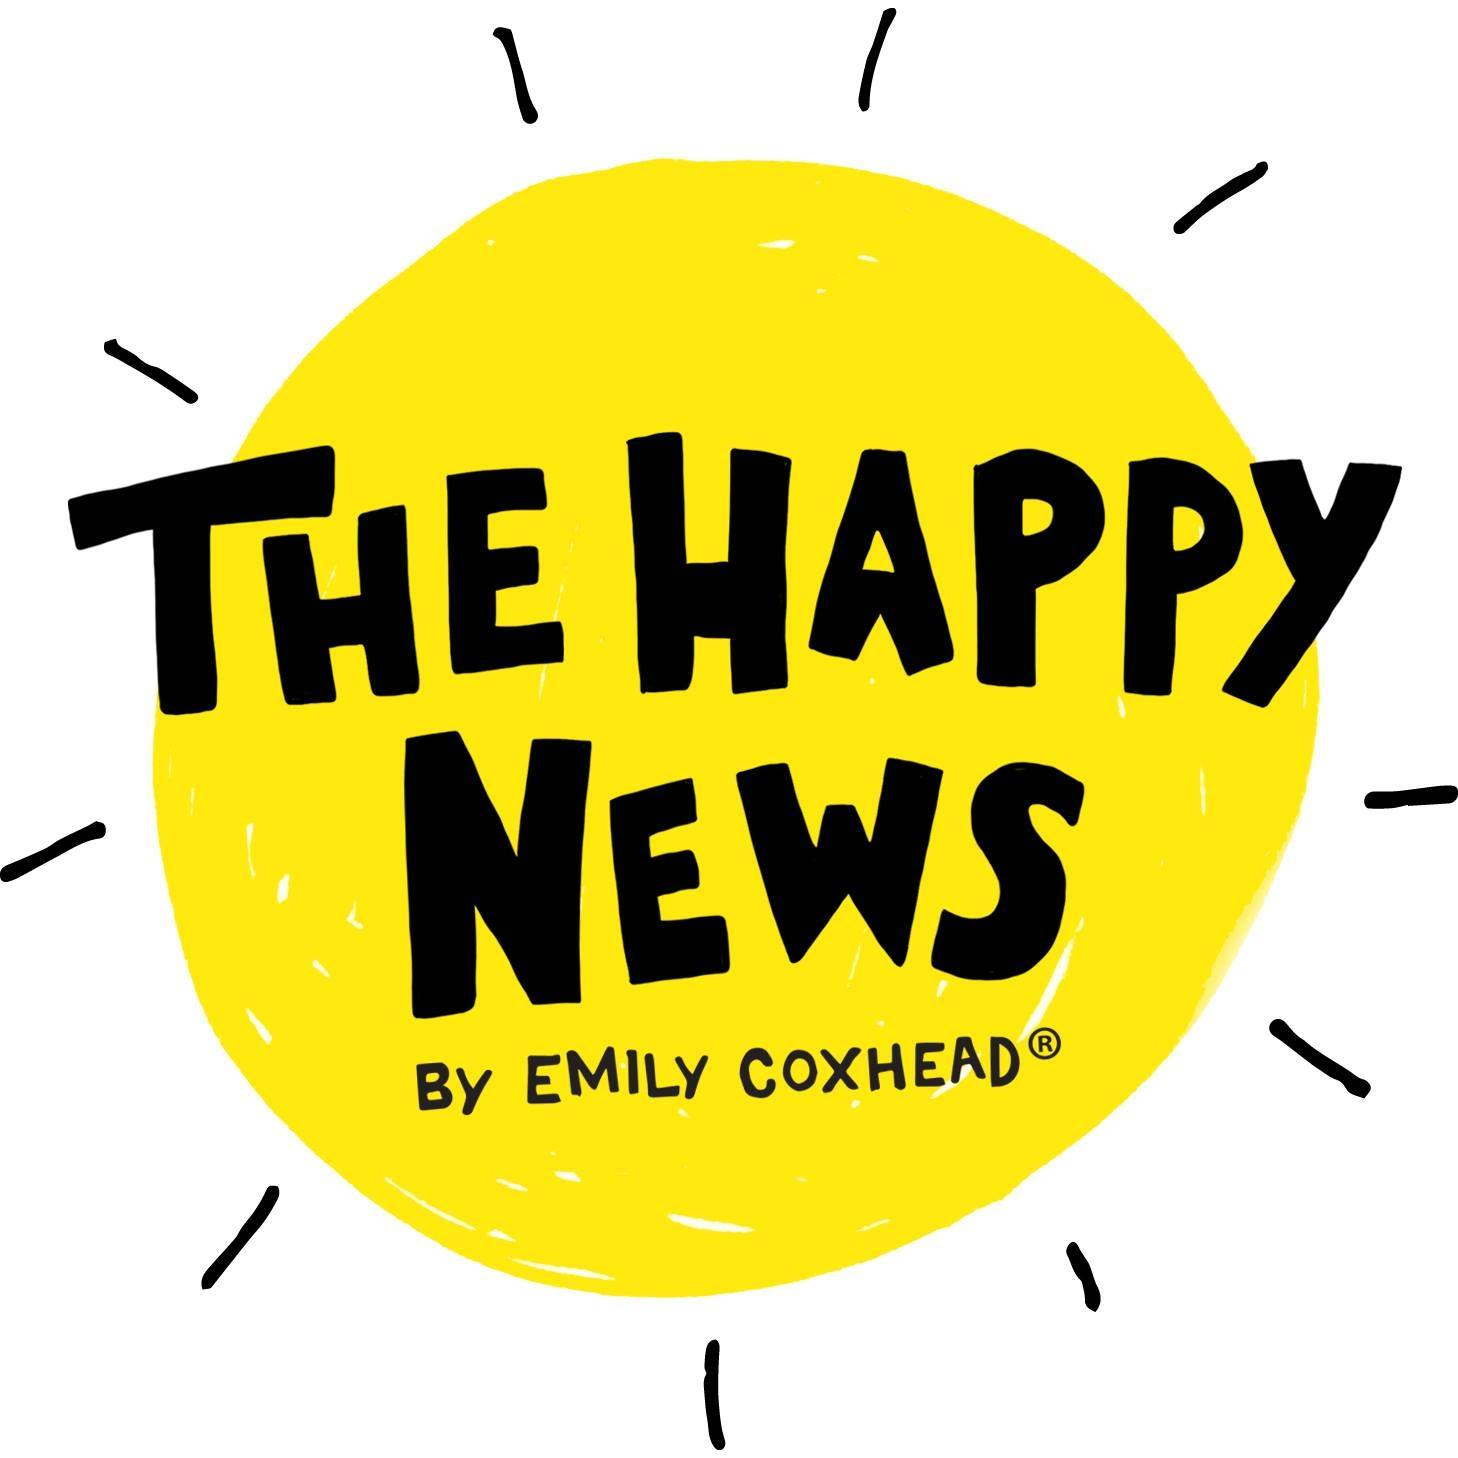 logo of The Happy News by Emily Coxhead